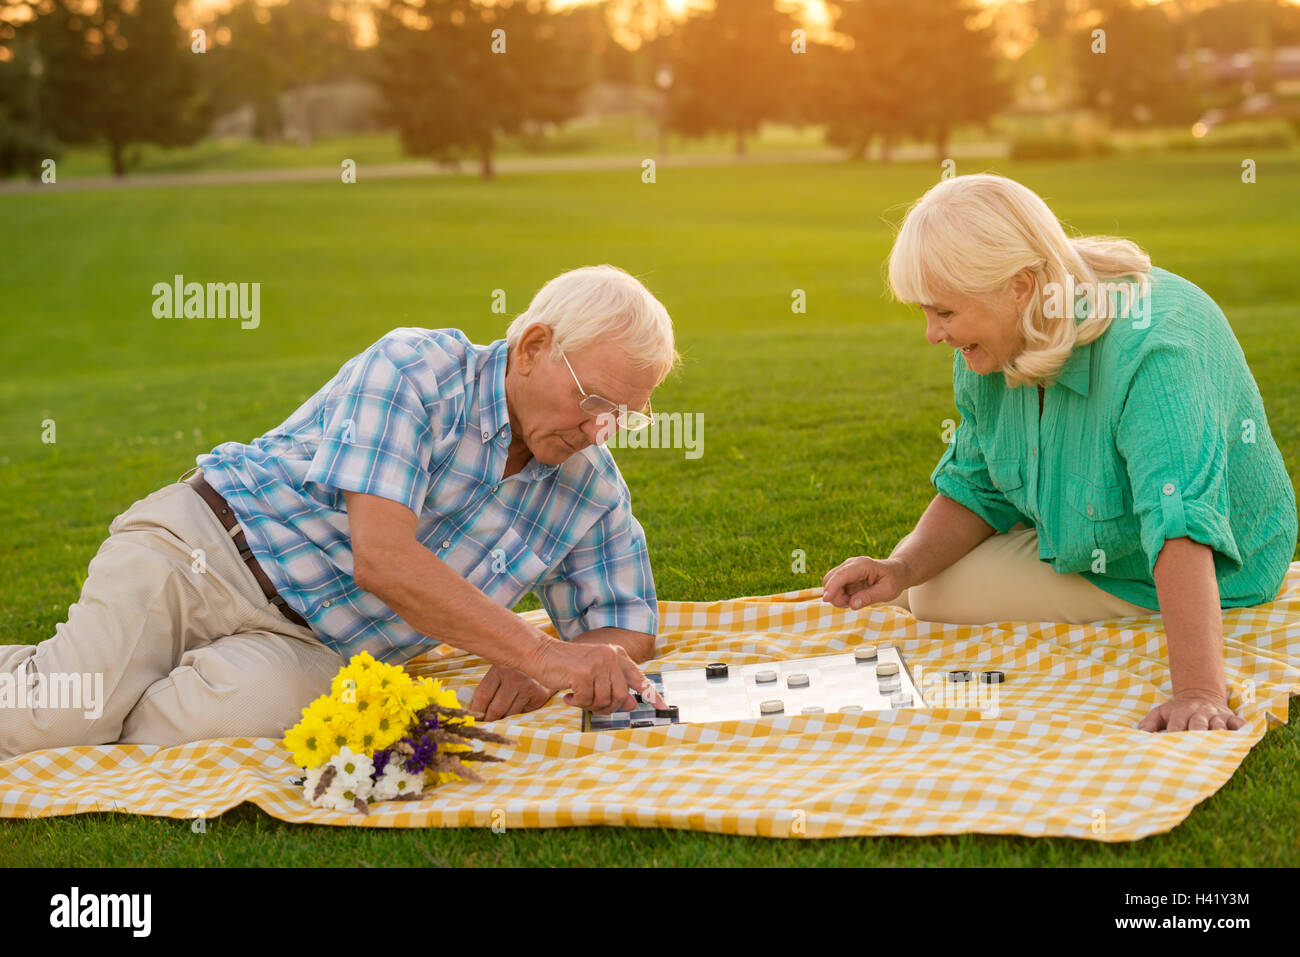 Senior couple plays checkers. Stock Photo